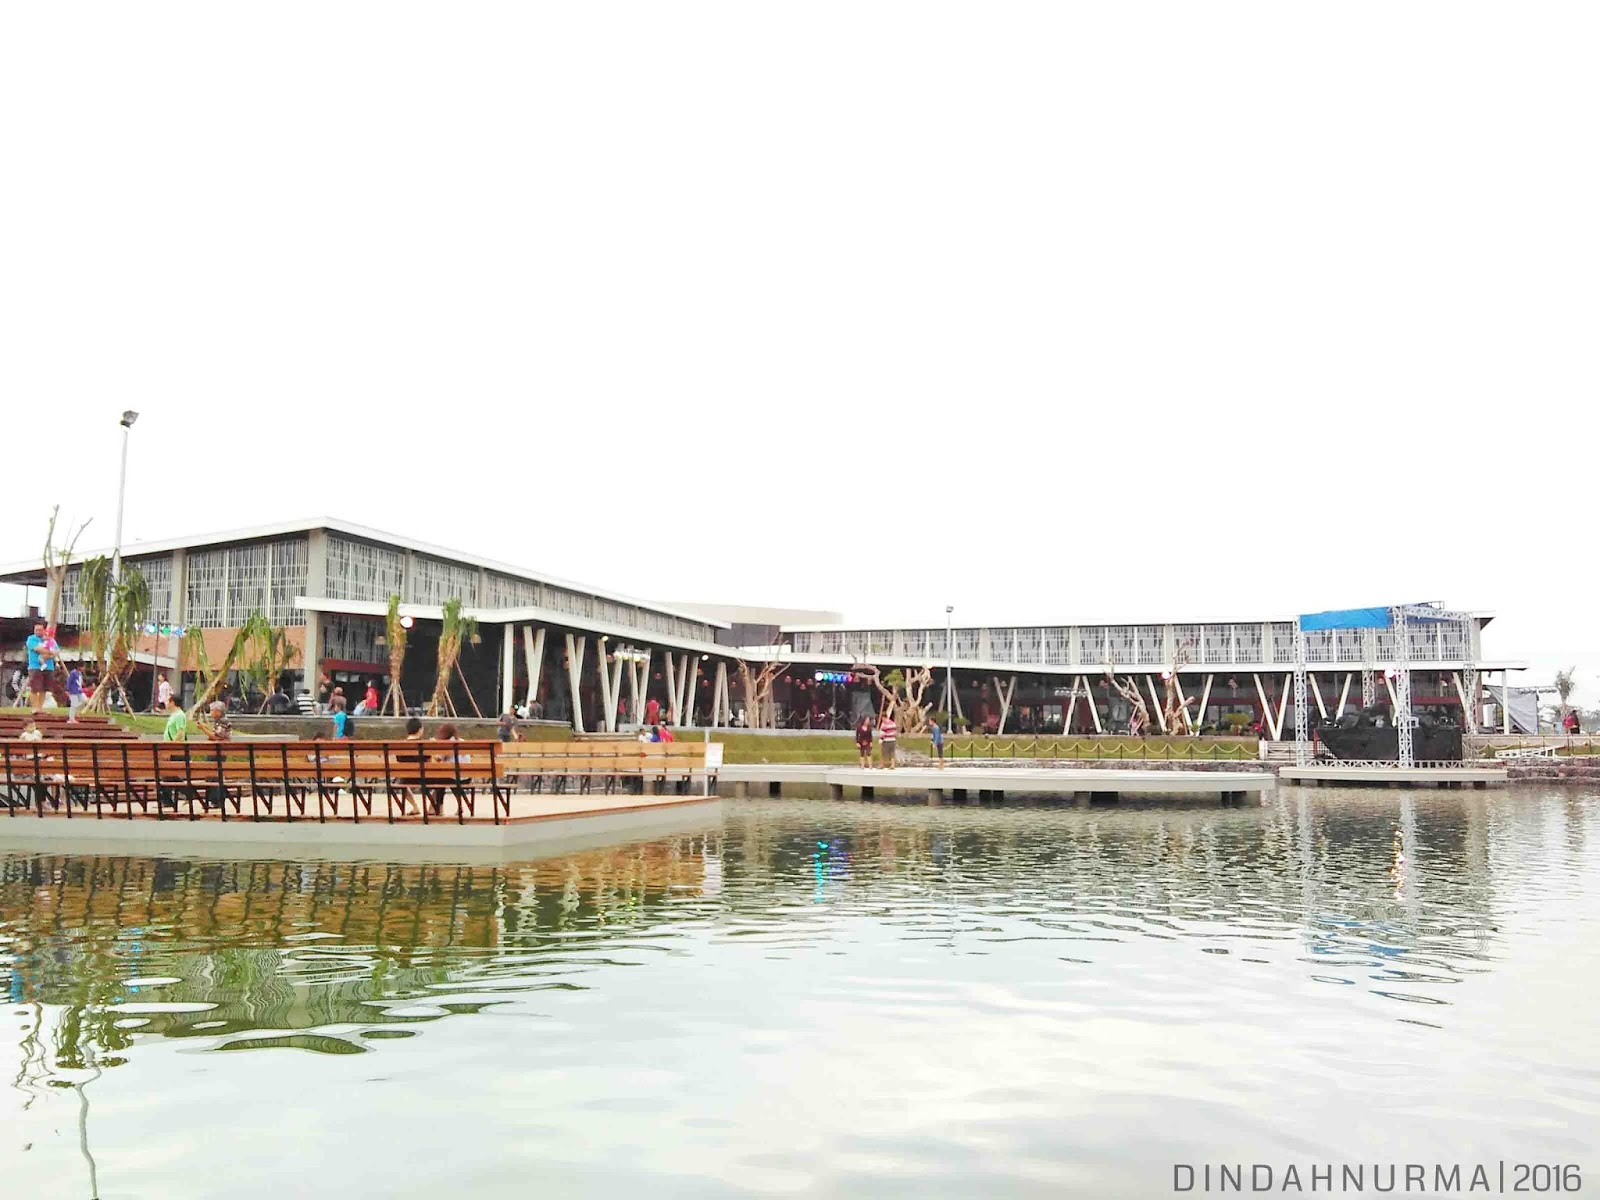 Indah Nurma Refreshing Kulineran Food Junction Grand Pakuwon Lagoon Pond